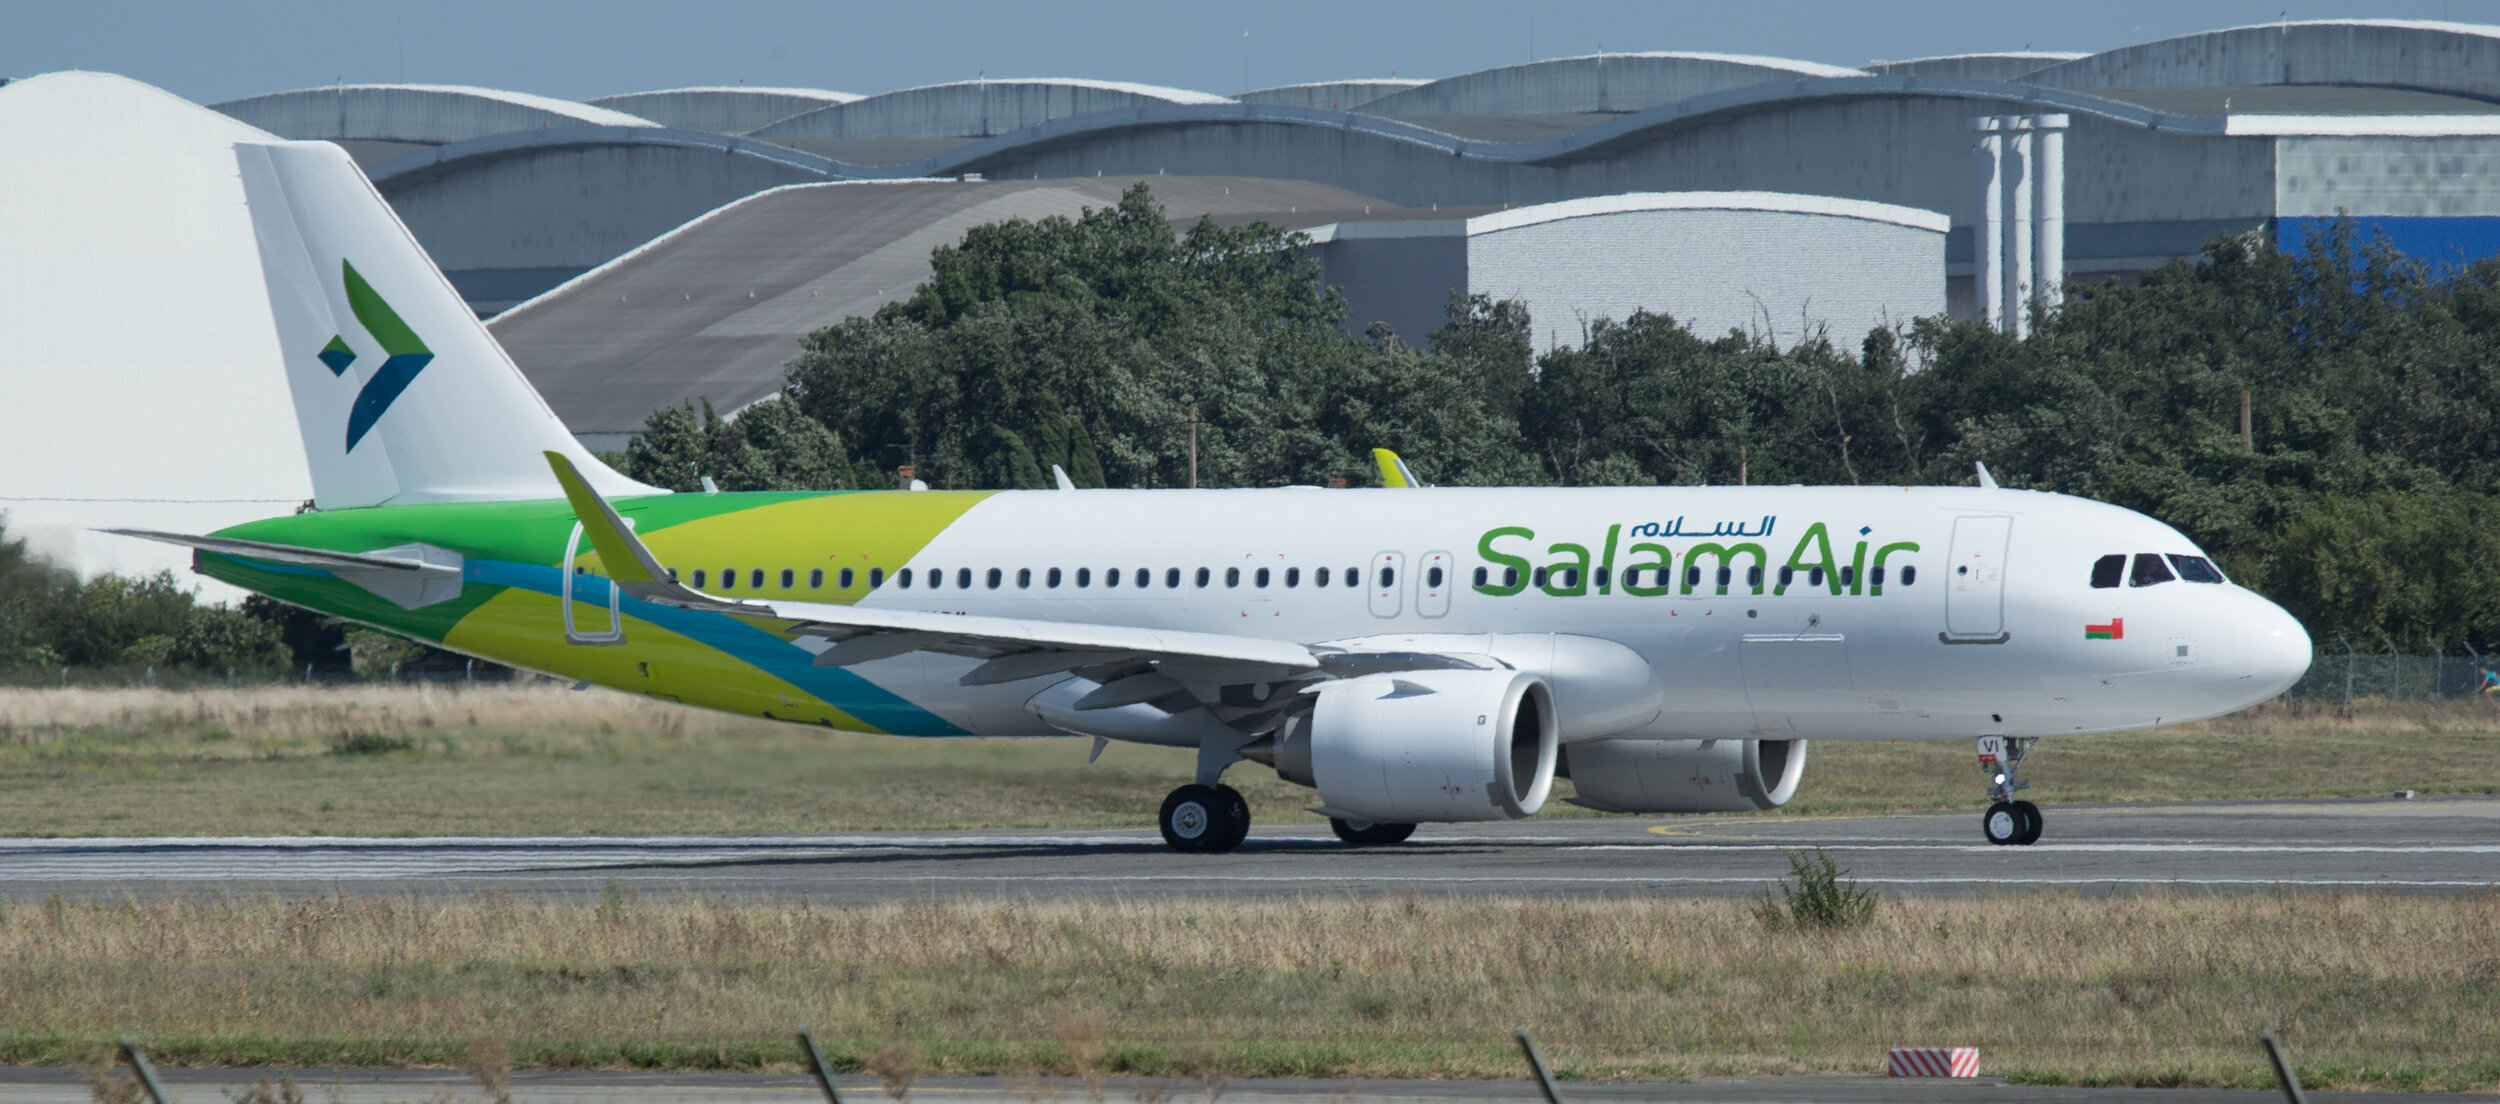 Salam Air A320N F-WWDM / A4O-AVI at Toulouse 20th September 2019. Photo: Peter Hampson.